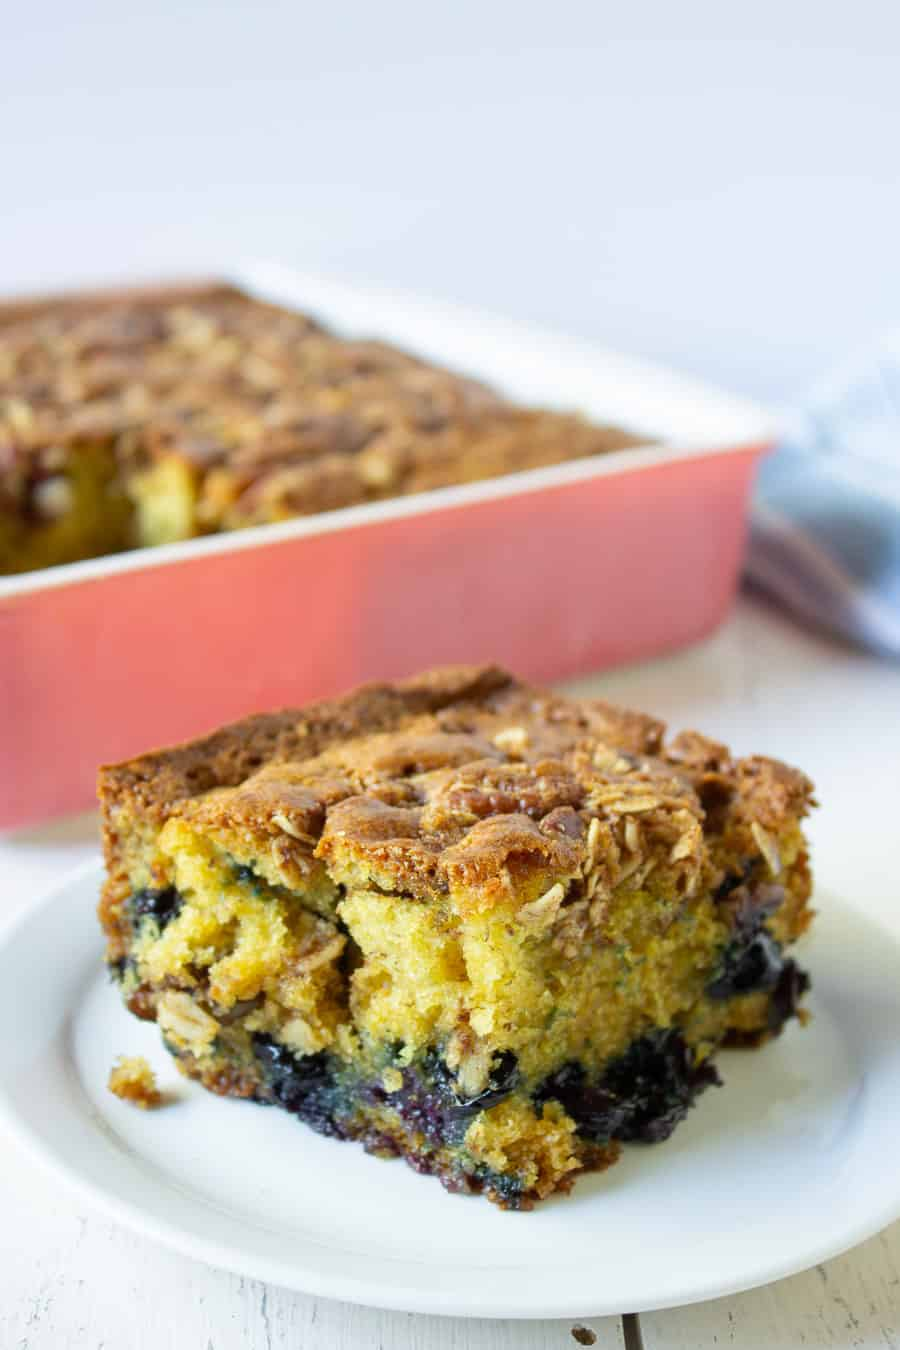 A slice of yellow cake with blueberries and pecans on a small plate.